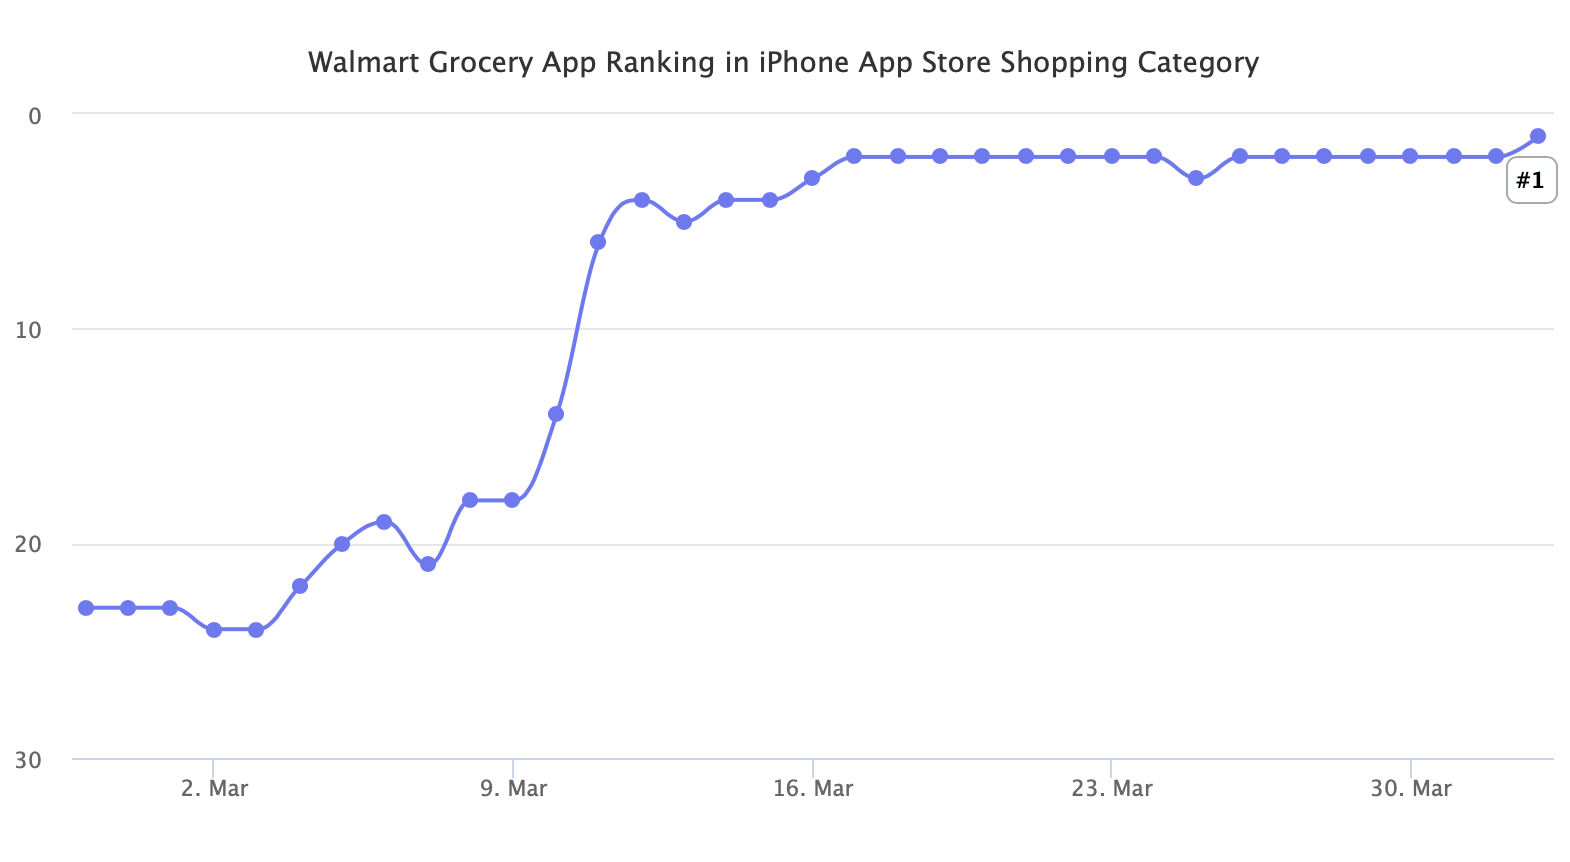 Walmart Grocery App Ranking in iPhone App Store Shopping Category